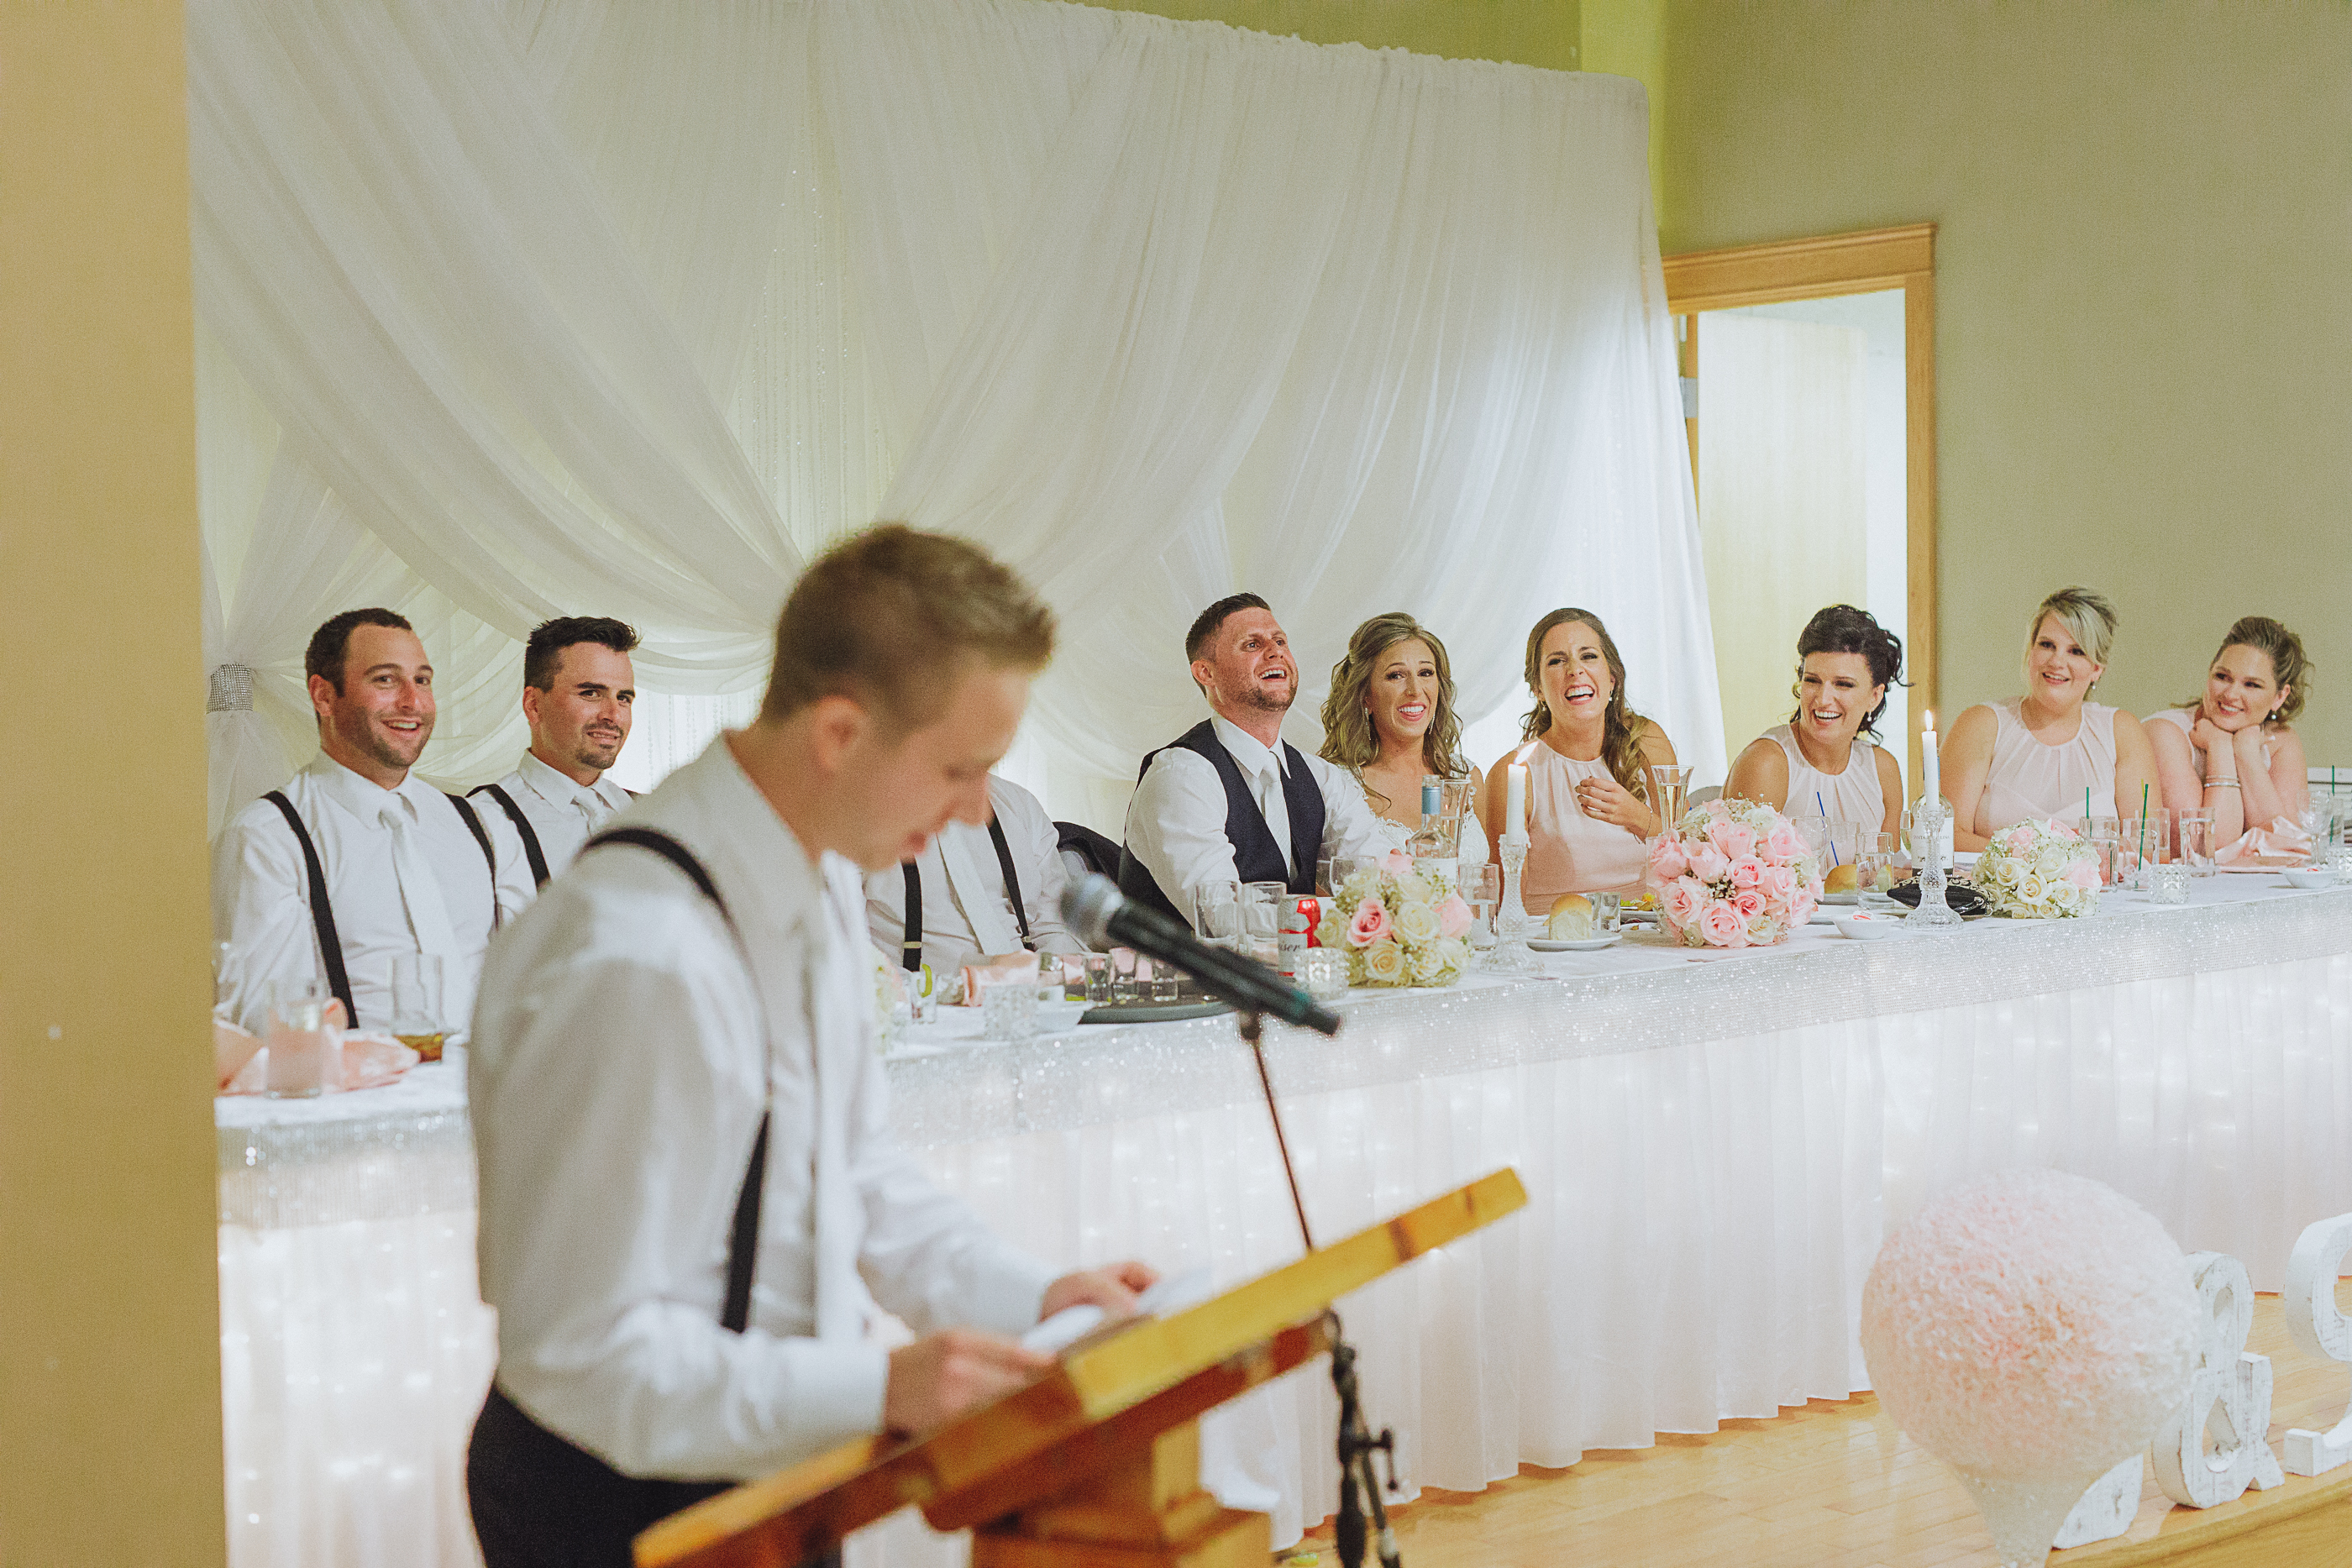 Belleisle wedding - speeches